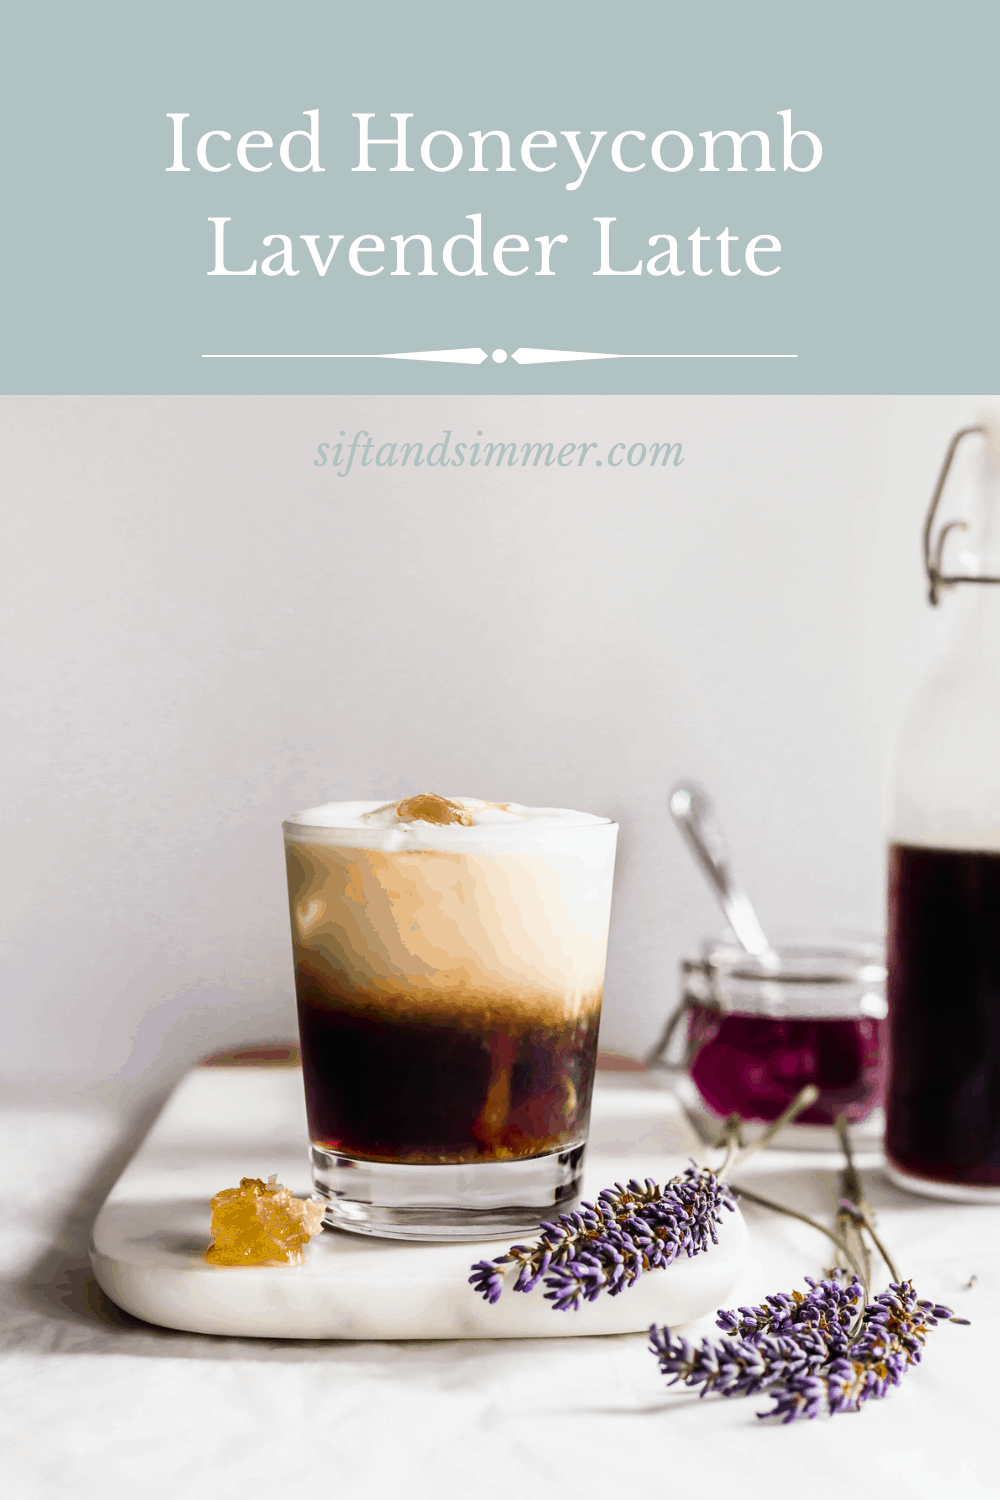 Glass of layered iced honeycomb lavender latte on marble with honeycomb and lavender flowers laying on the side, purple lavender syrup in background with text overlay.